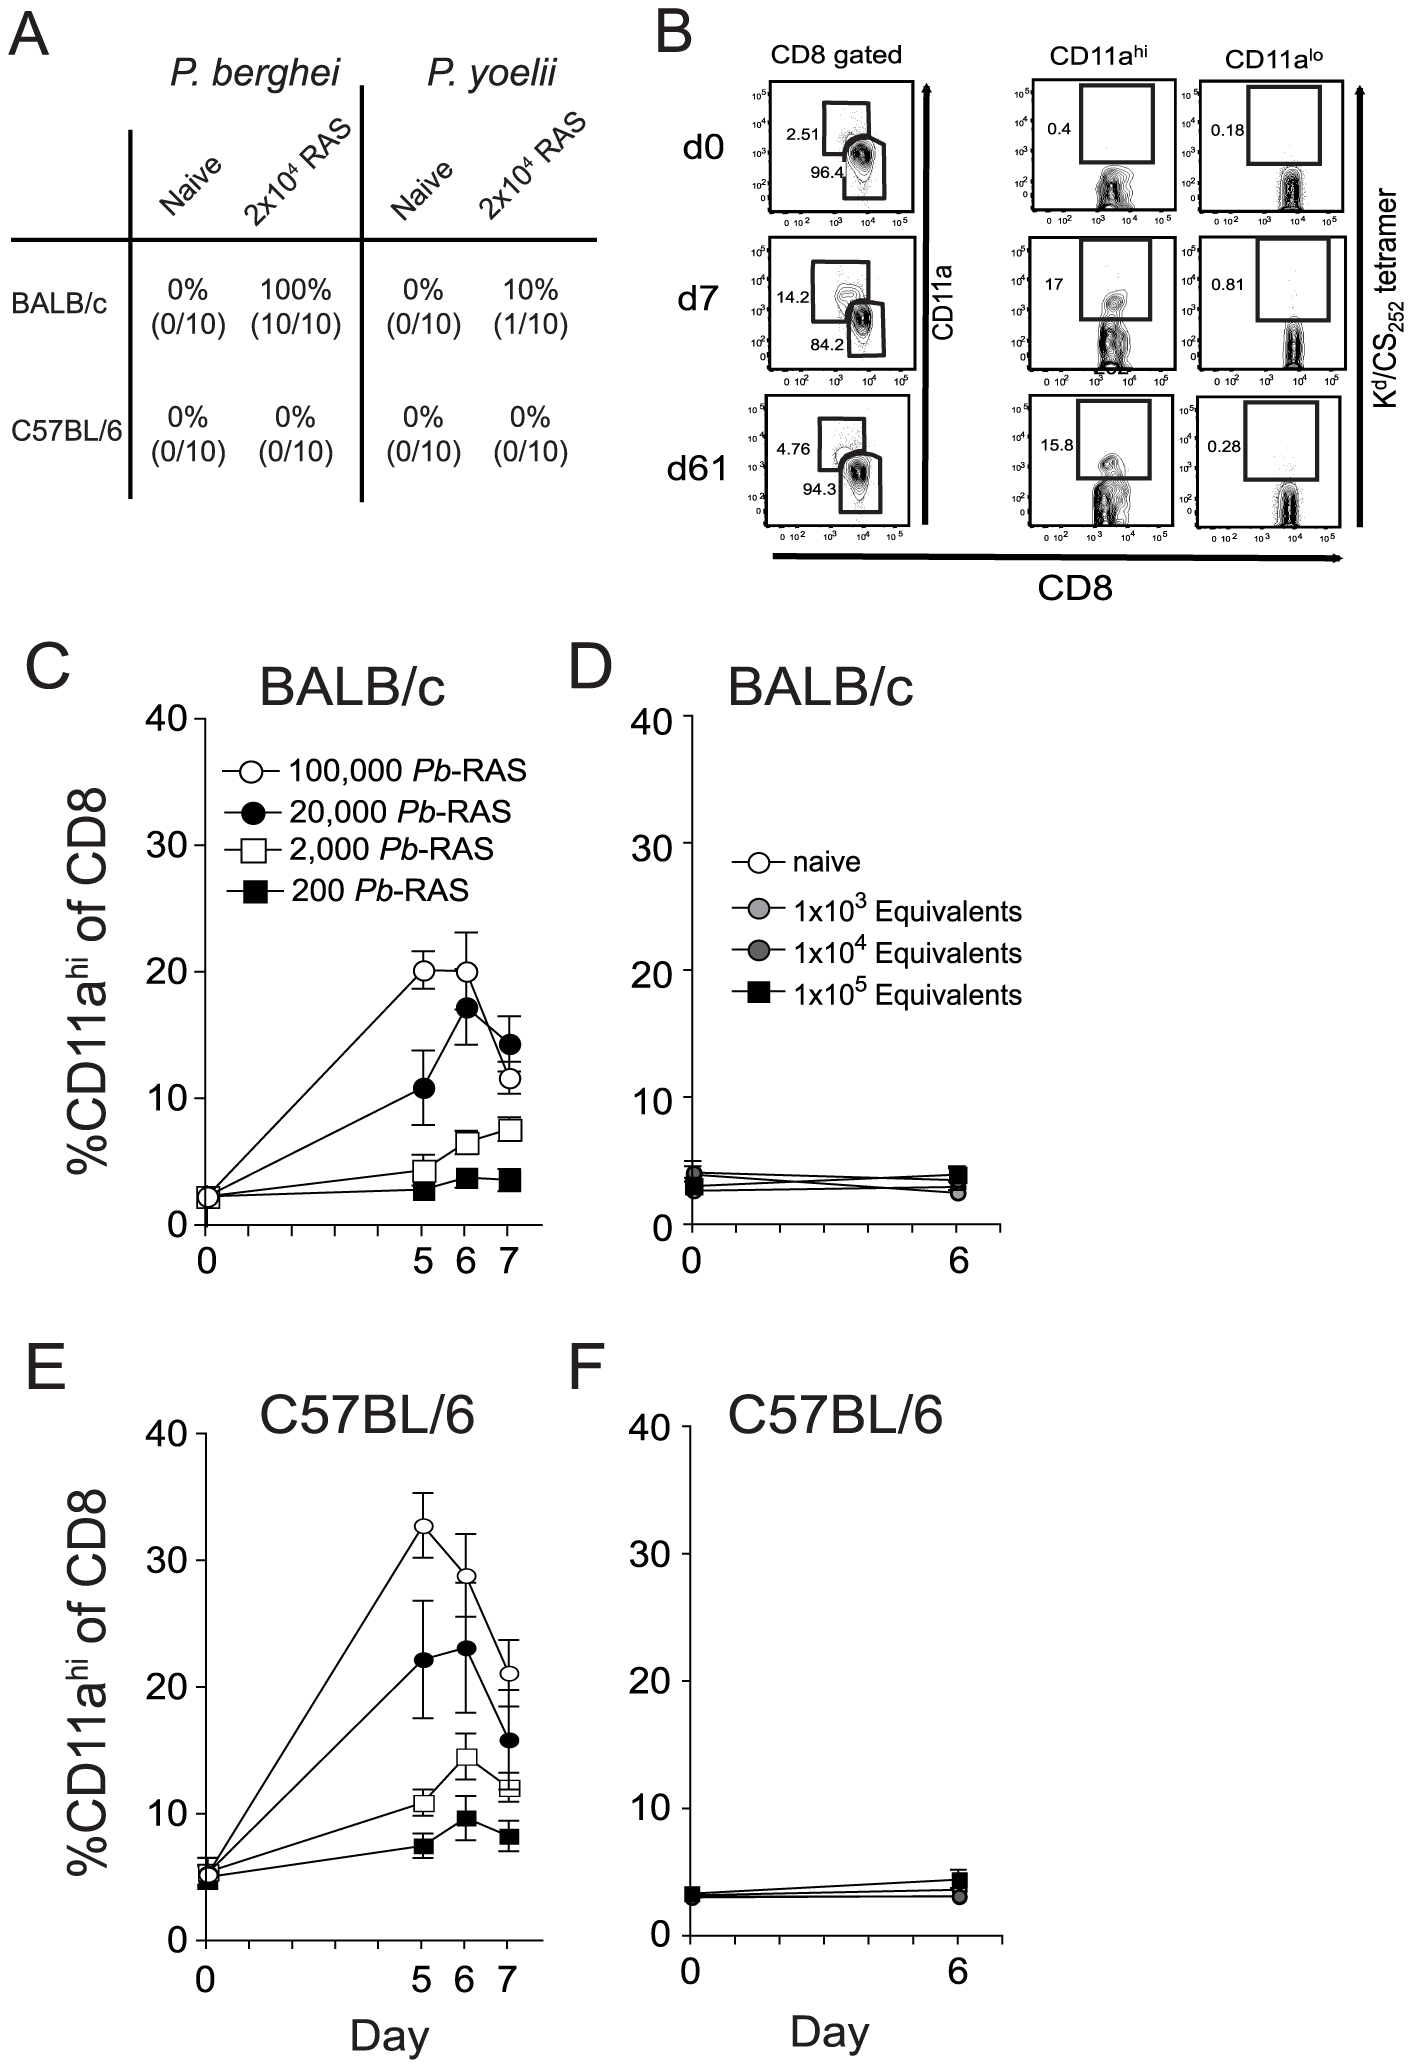 Sensitivity and specificity of the CD8α<sup>lo</sup>CD11a<sup>hi</sup> surrogate activation marker approach to identify RAS vaccination-induced CD8 T cell responses.